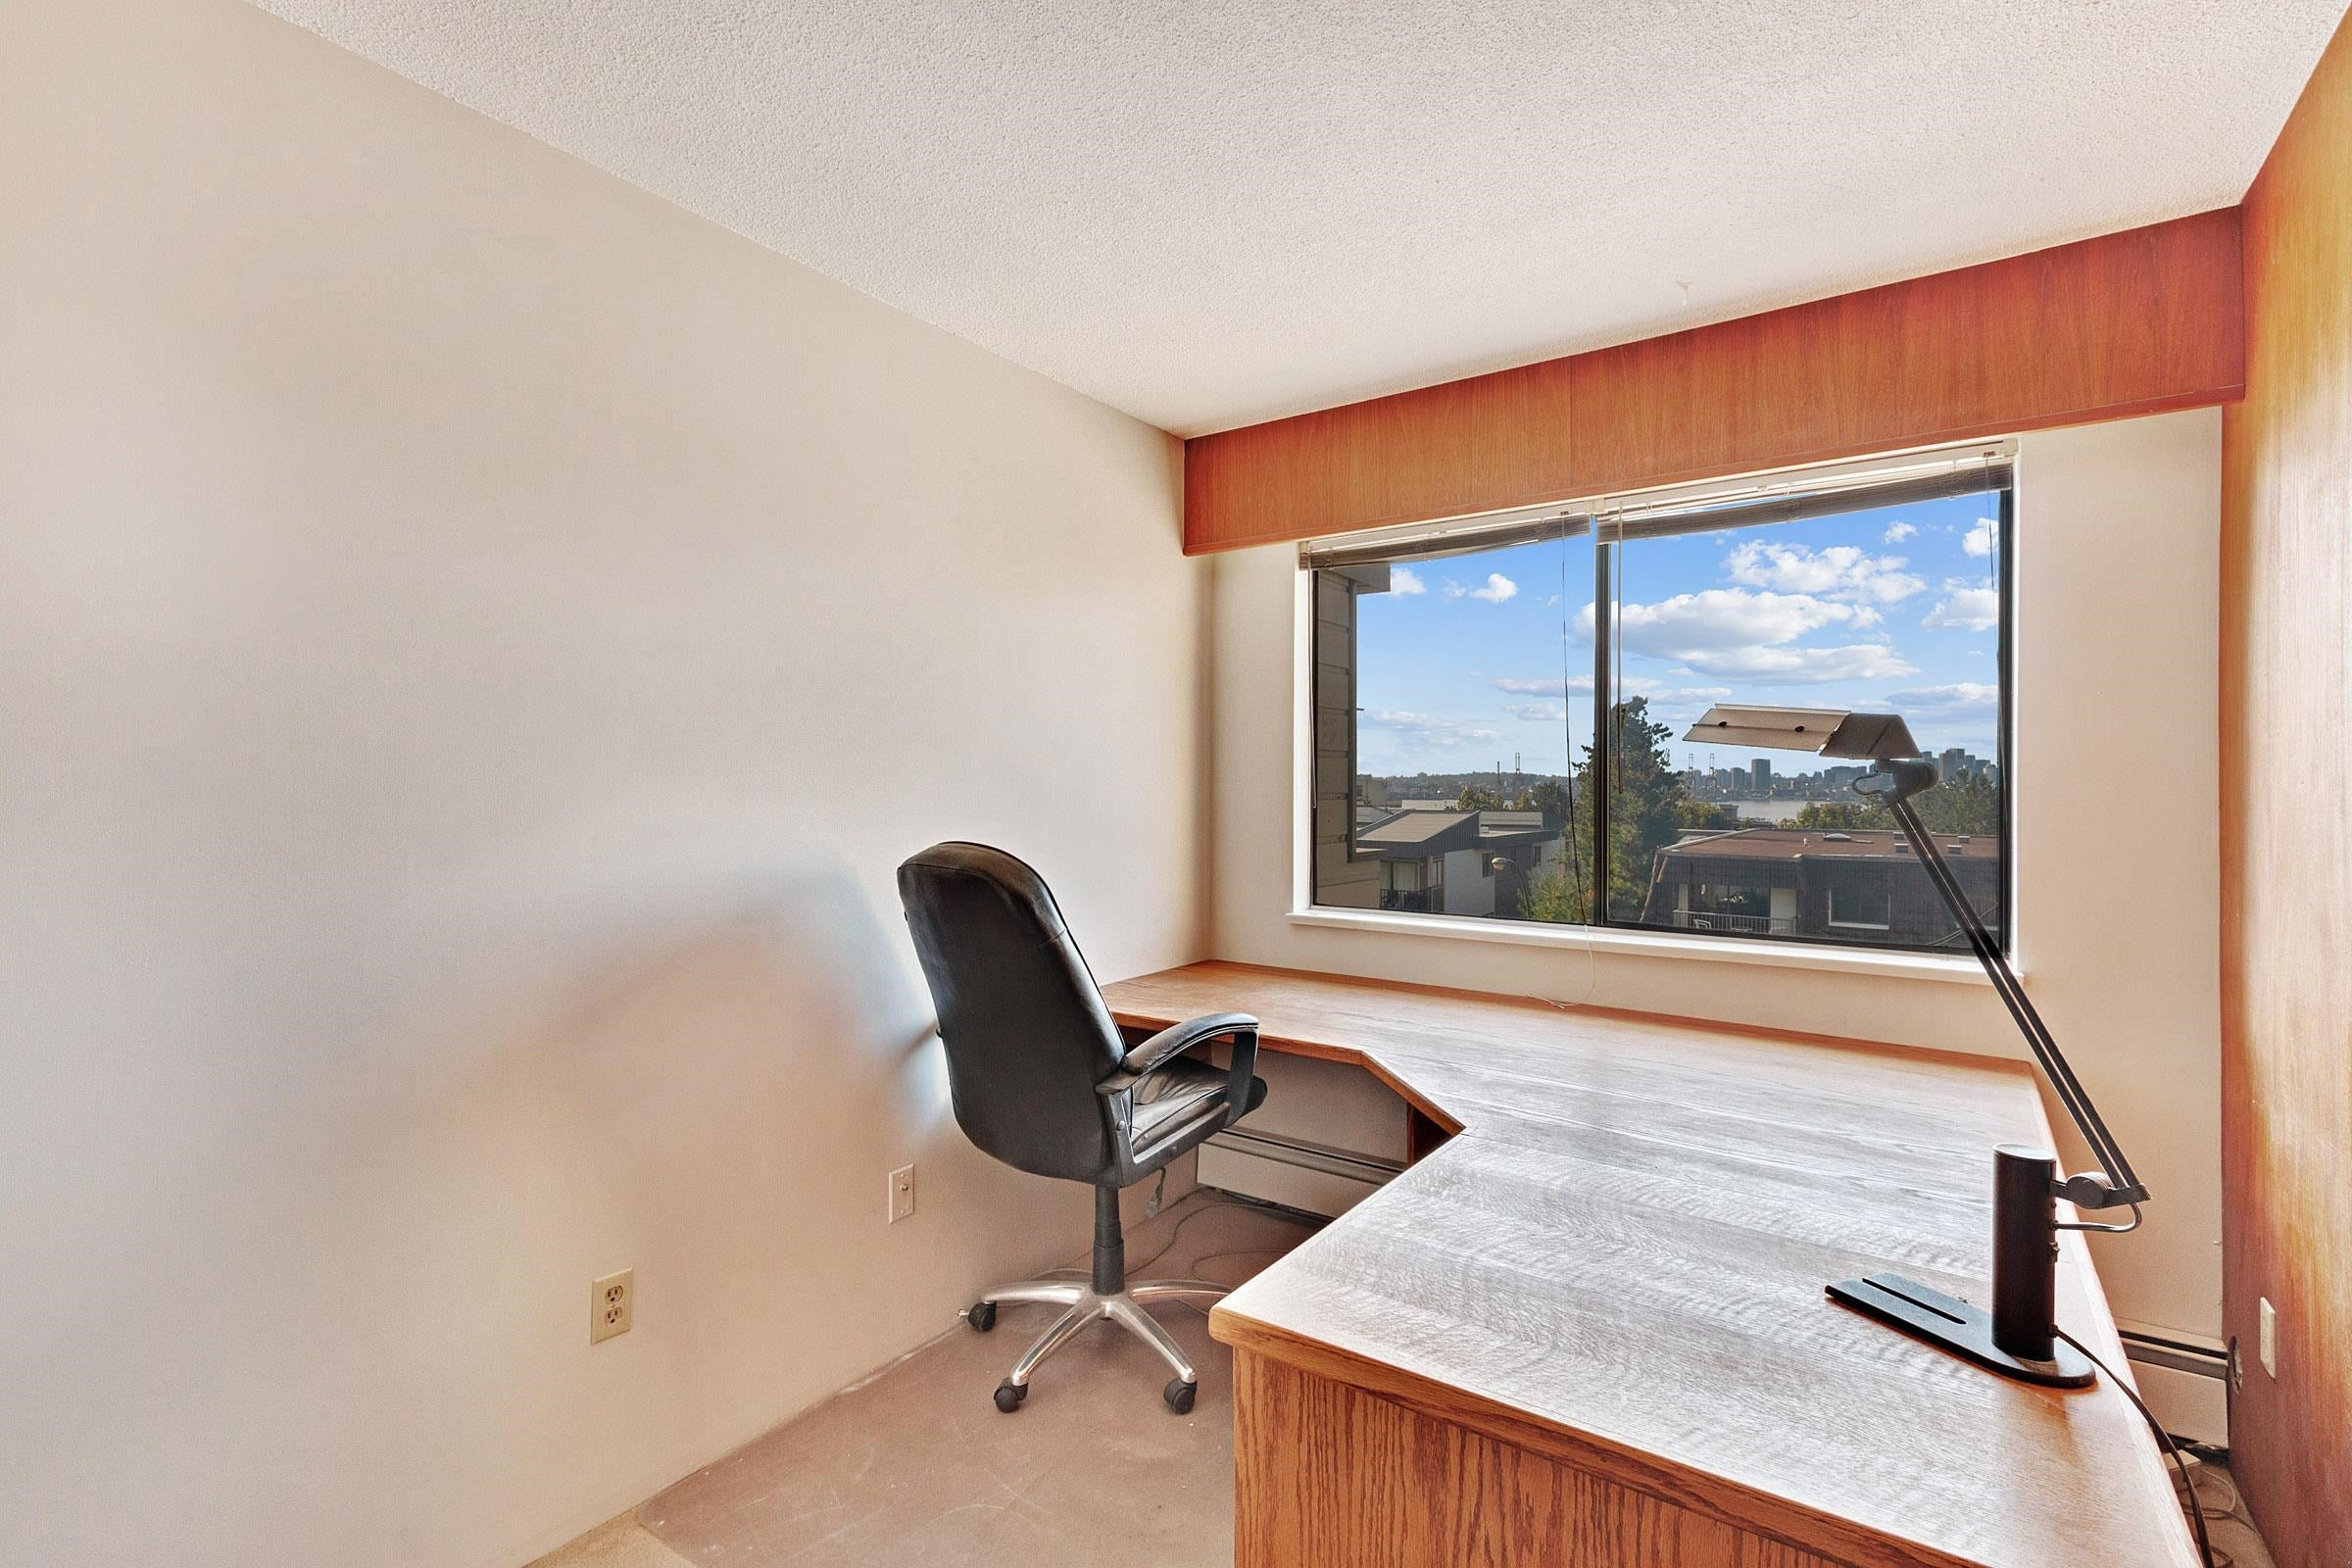 301 264 W 2ND STREET - Lower Lonsdale Apartment/Condo for sale, 2 Bedrooms (R2625527) - #14